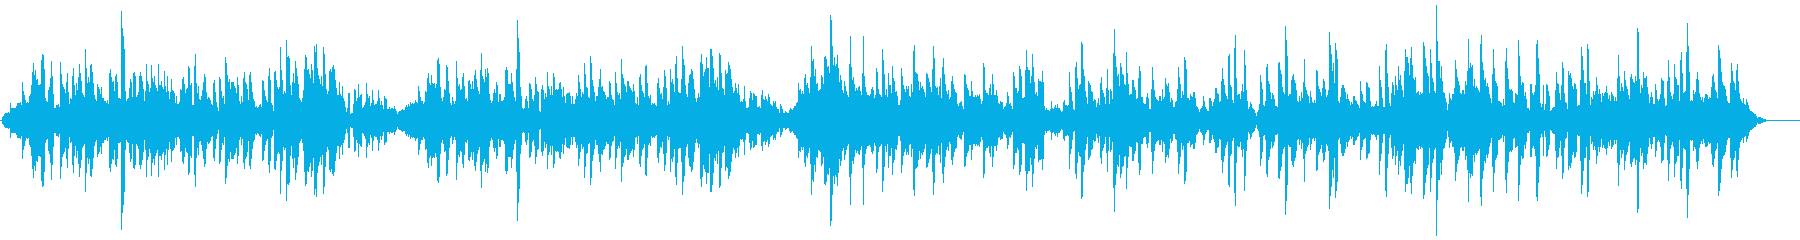 Fashionable samba for guitar and flute's reproduced waveform